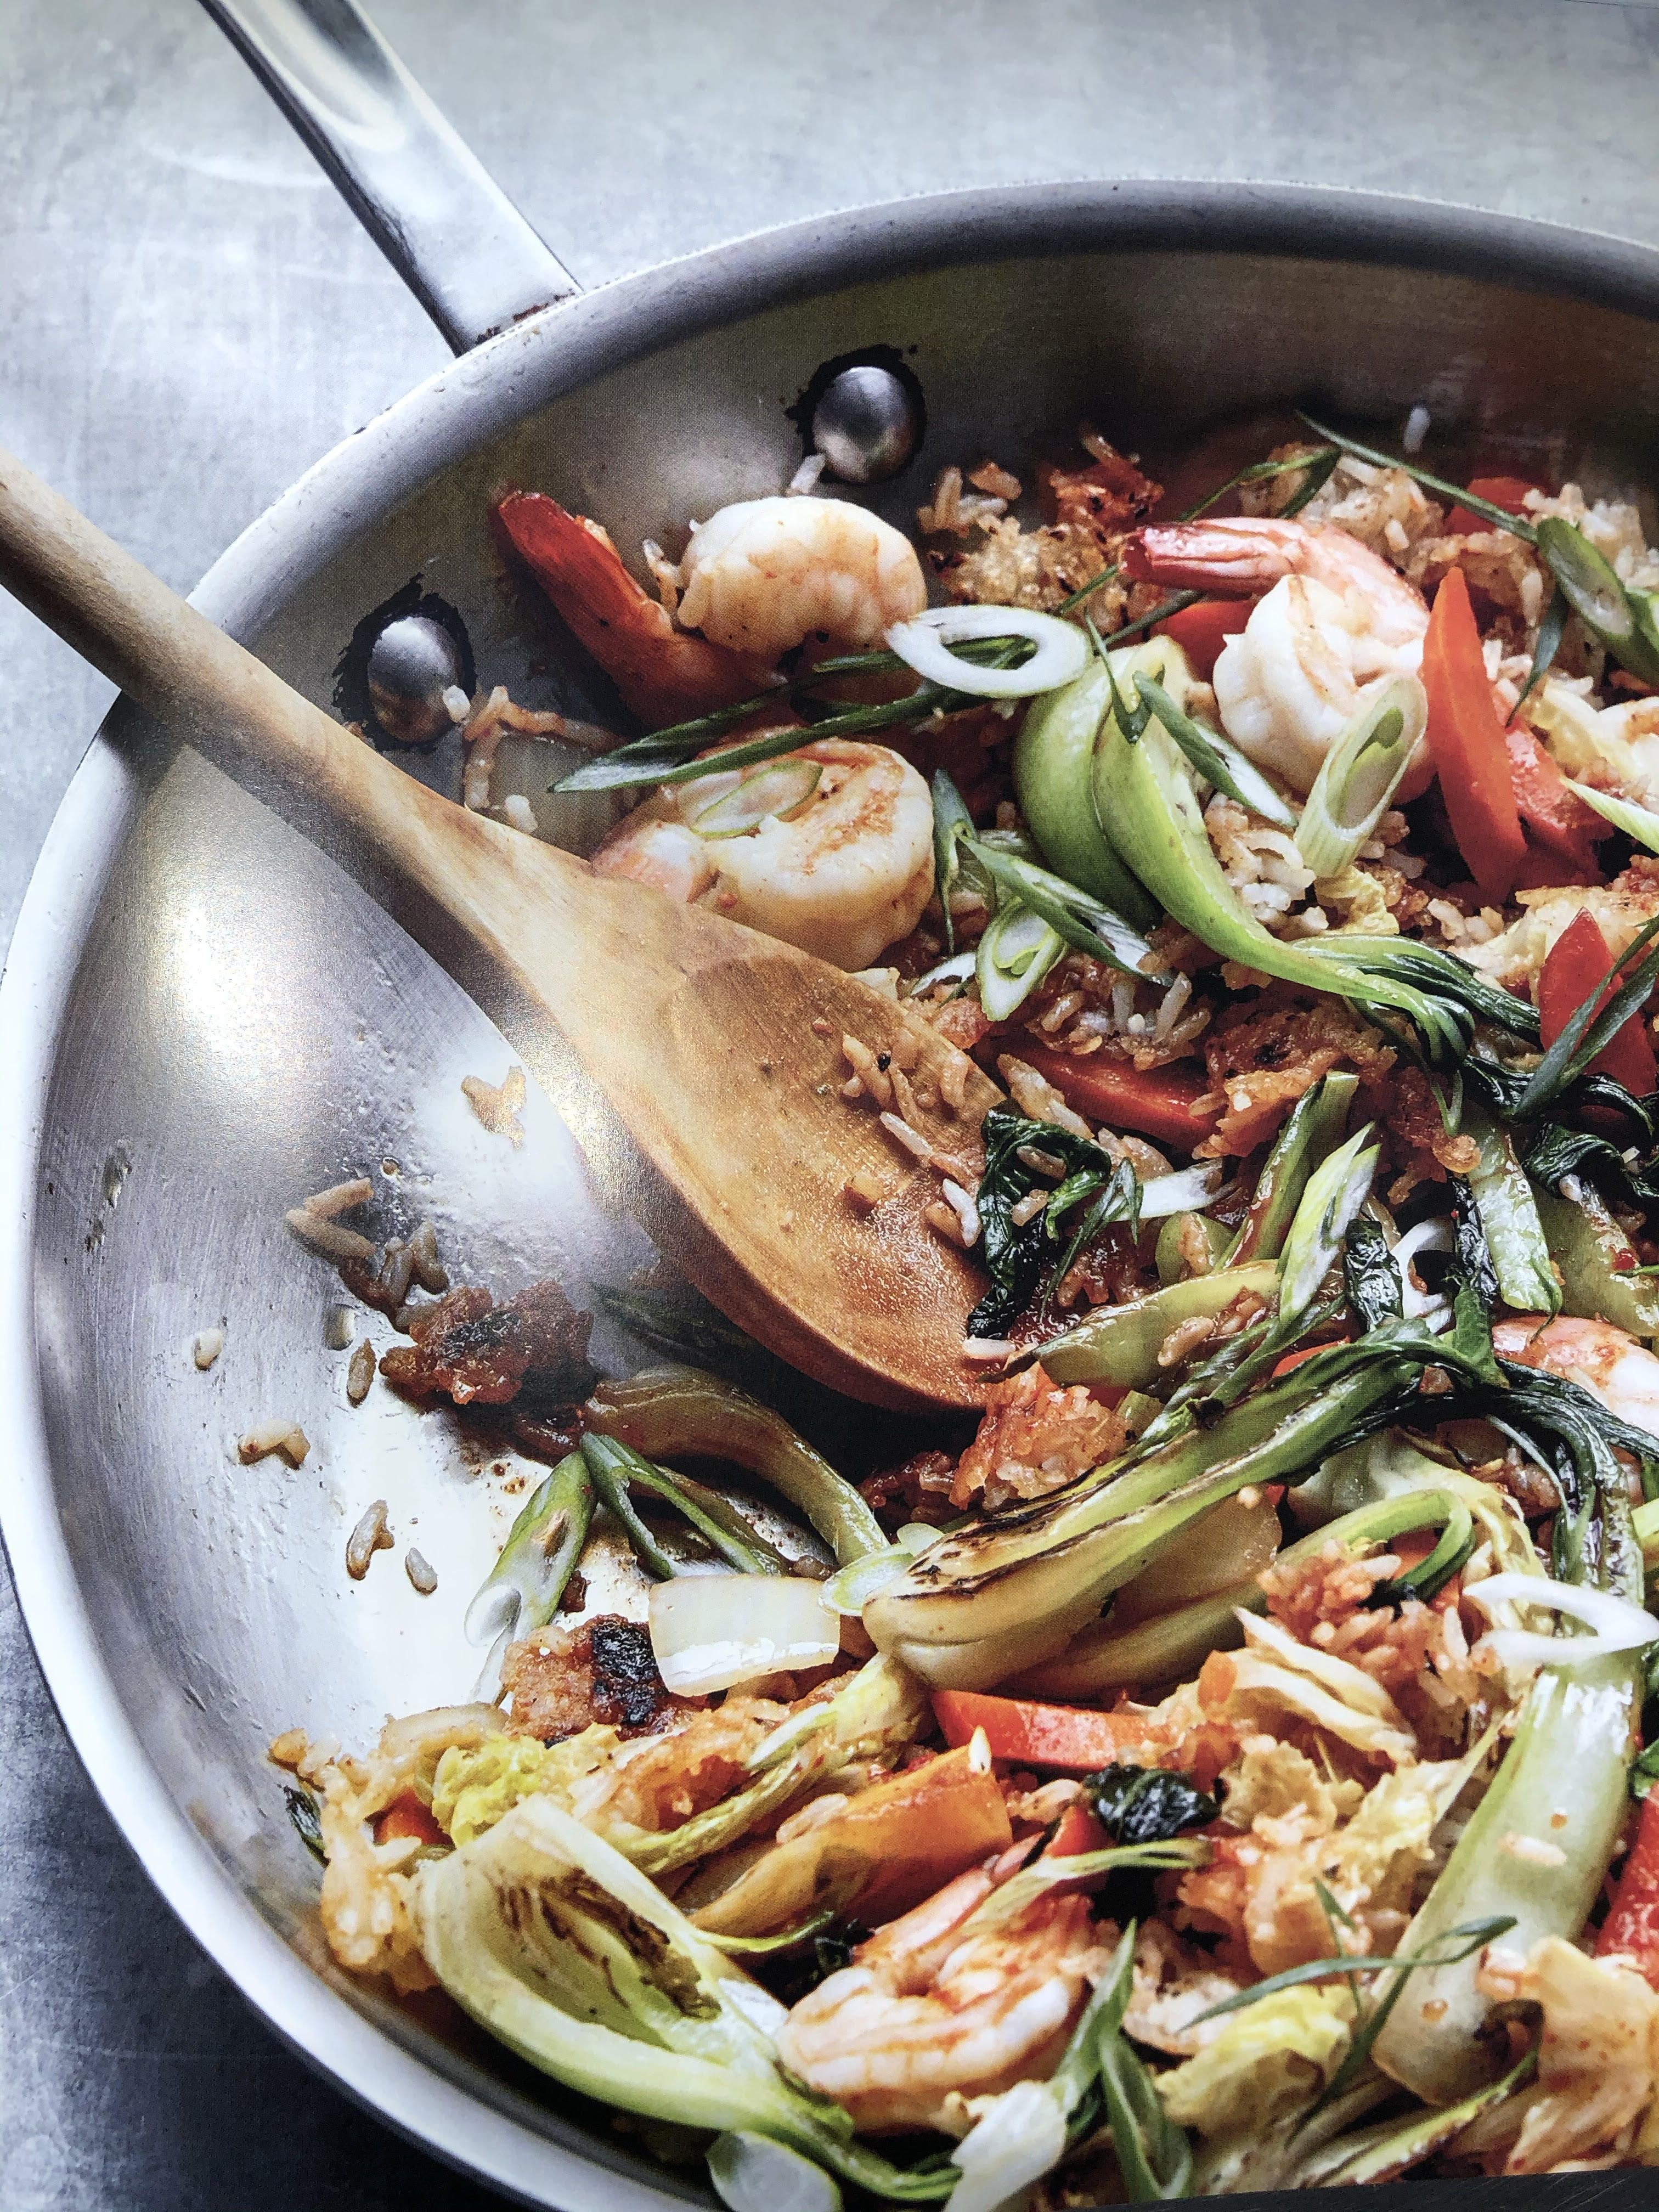 Dorie greenspan ginger fried rice from everyday dorie in